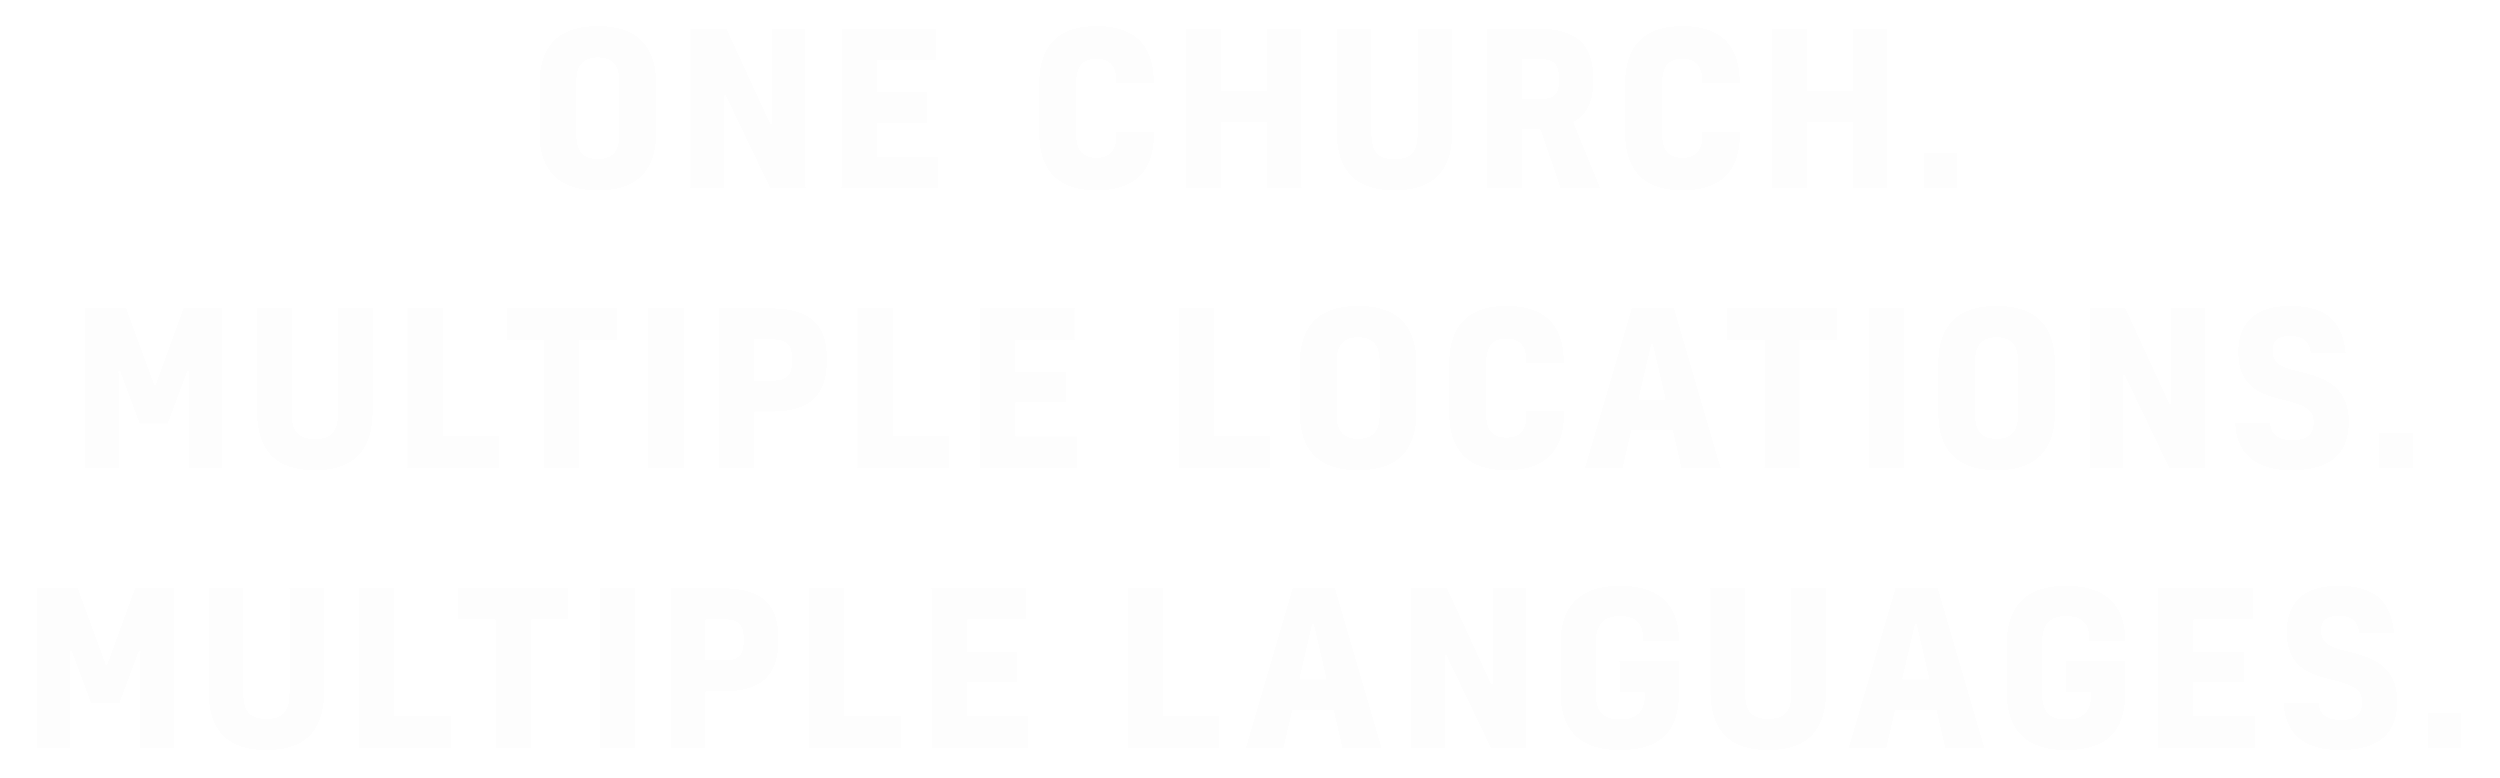 Life Center Tacoma | One Church. Multiple Locations. Multiple Languages.